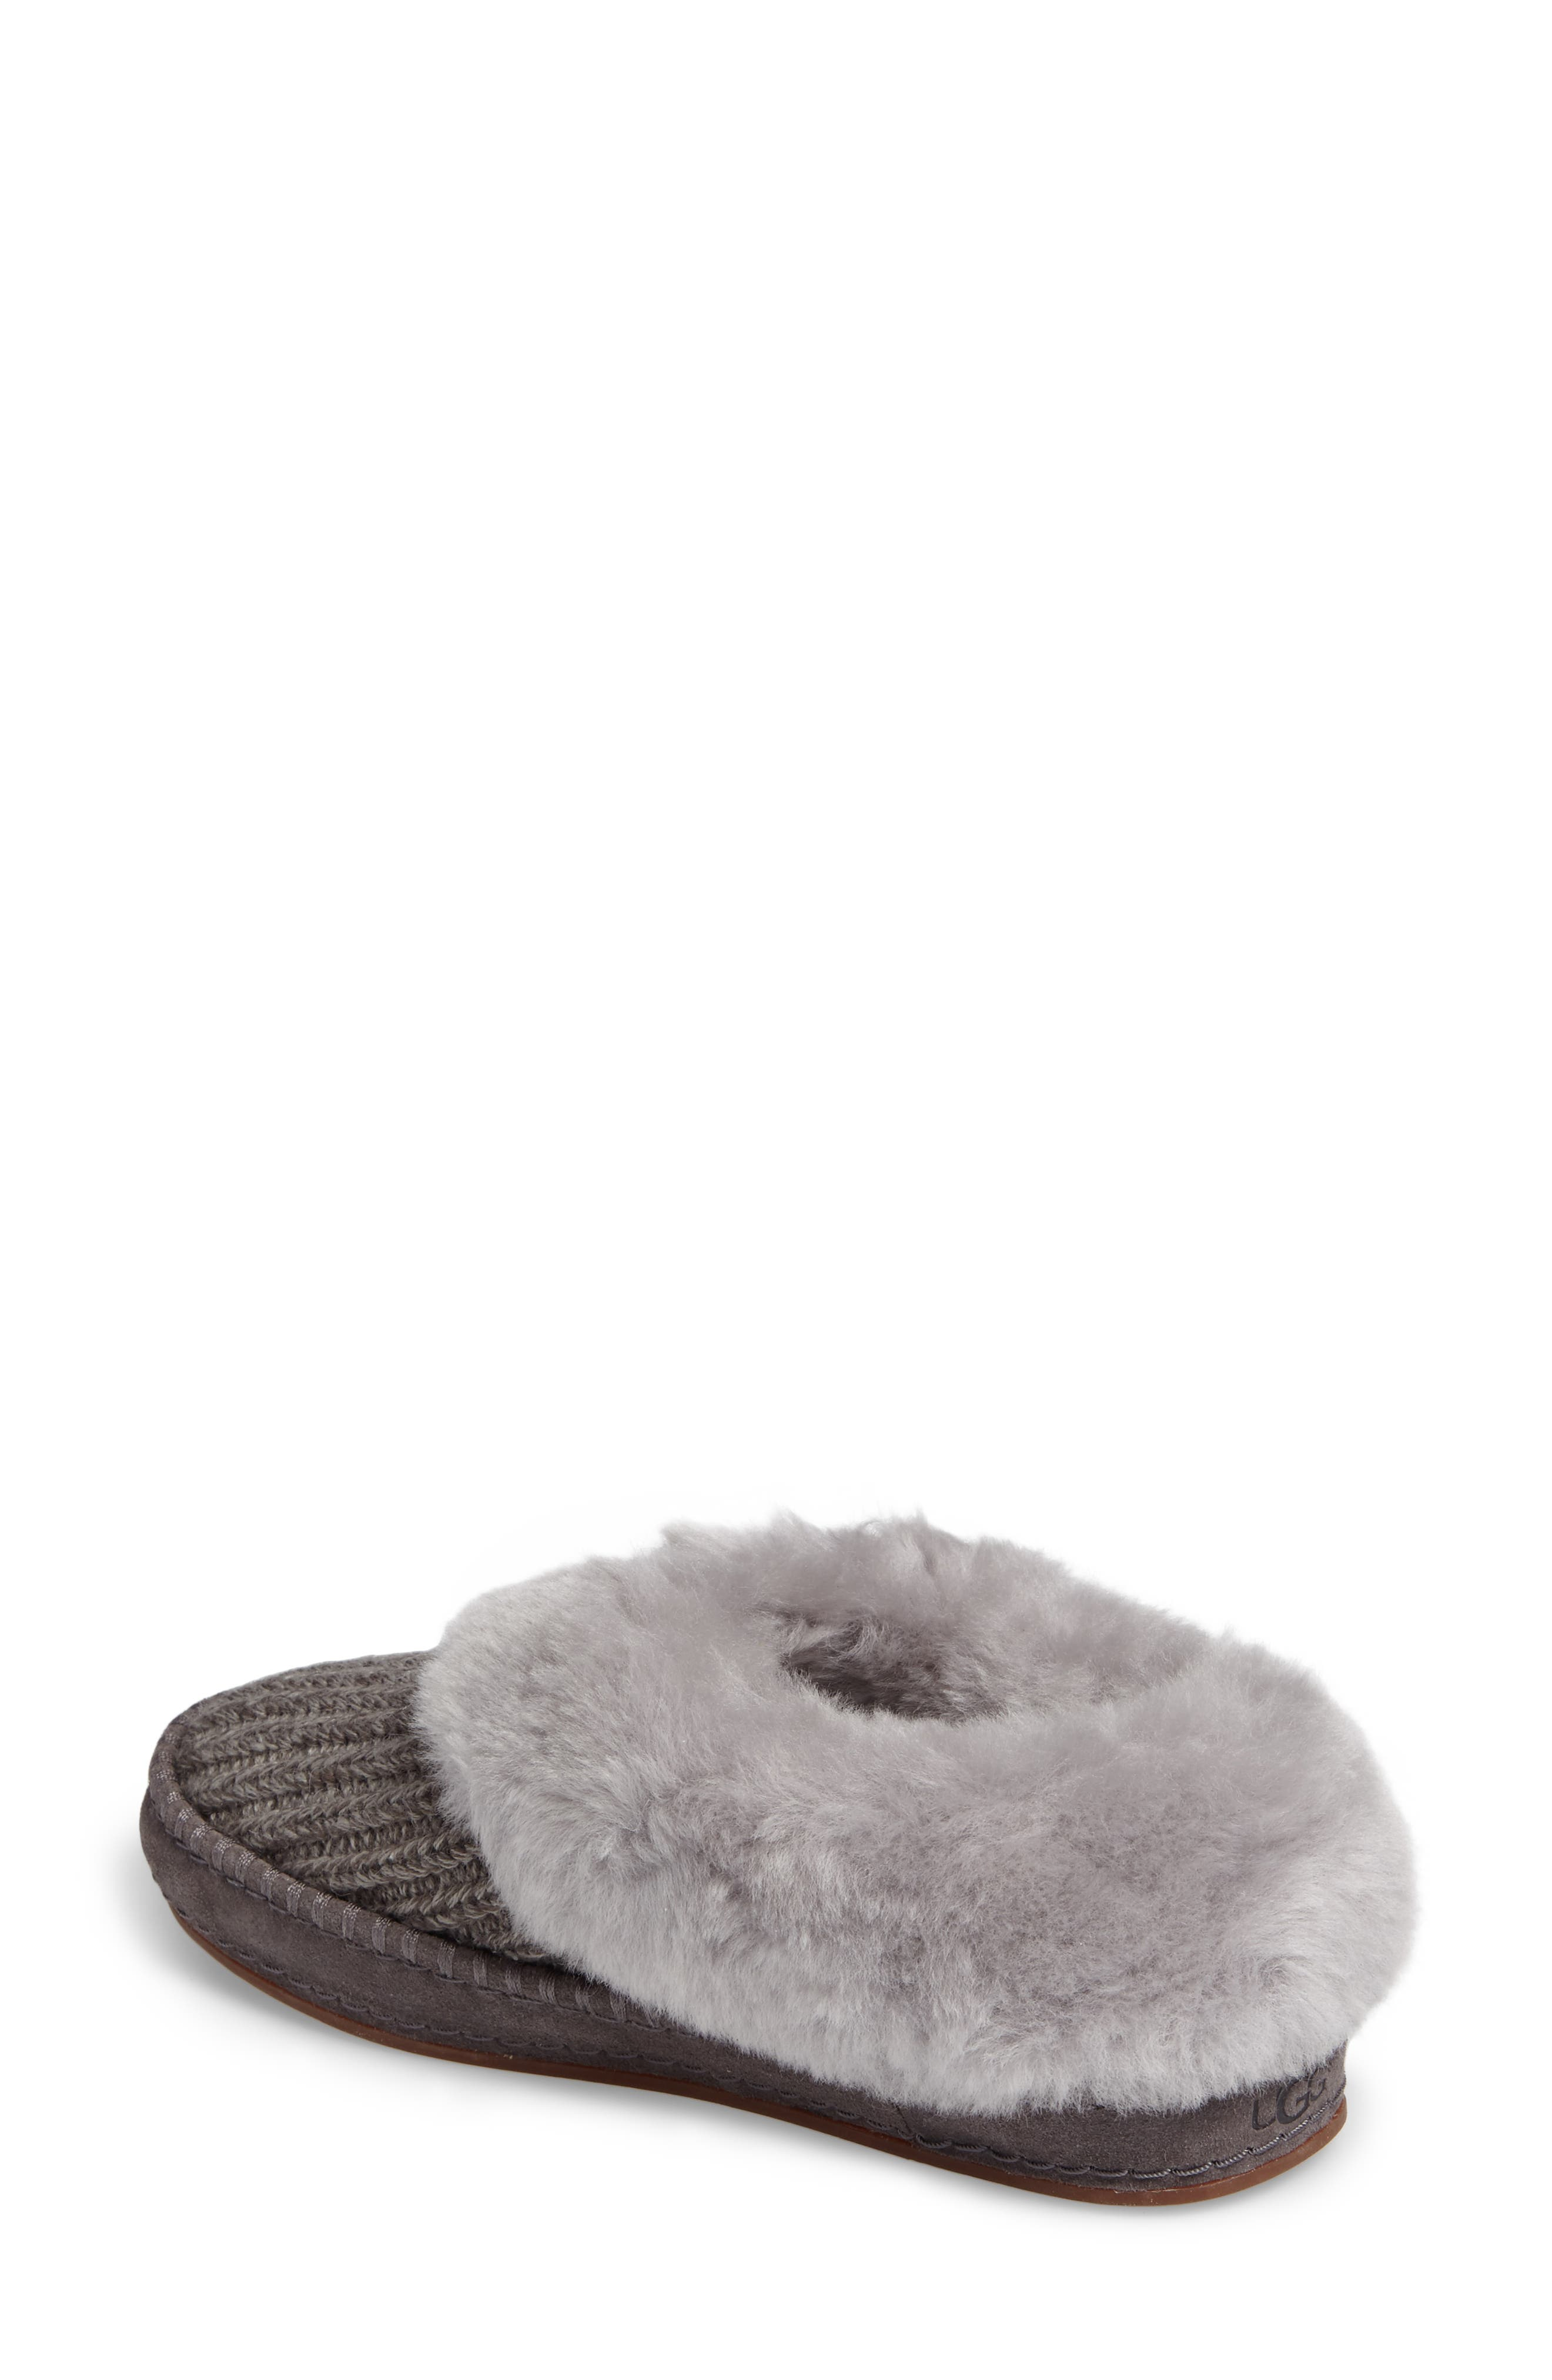 Wrin Rib-Knit & Genuine Shearling Slipper,                             Alternate thumbnail 2, color,                             020